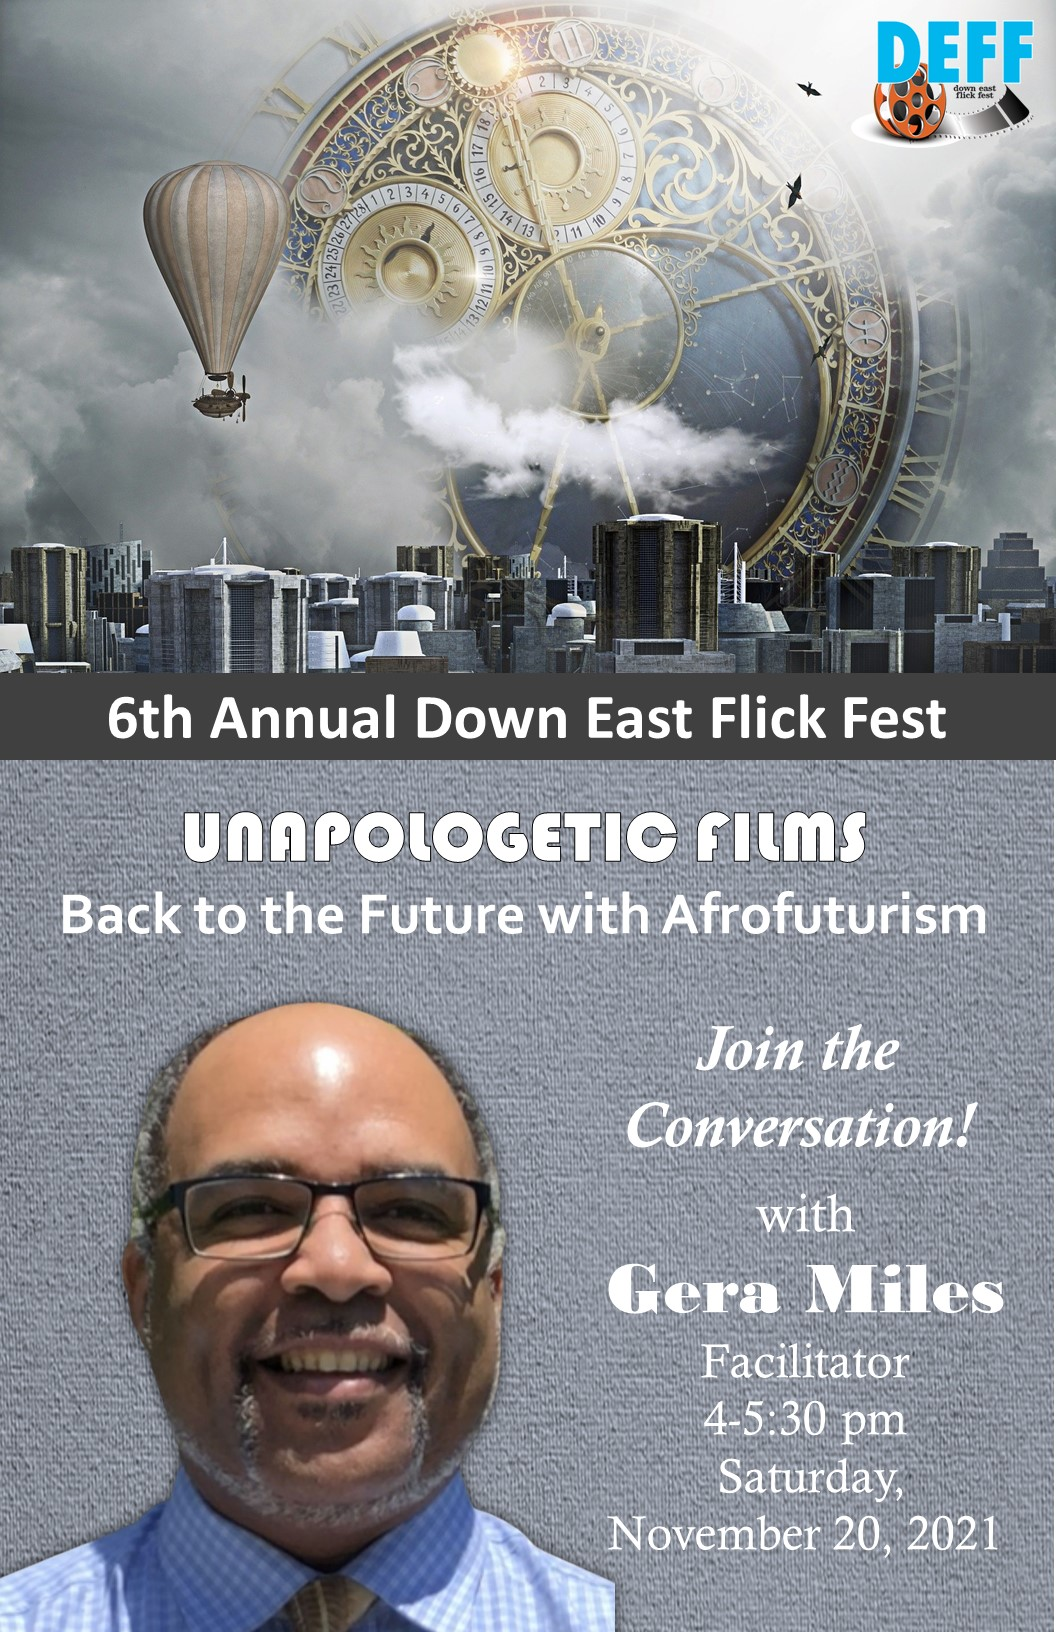 Gera Miles' Unapologetic Films: Back to the Future with Afrofuturism